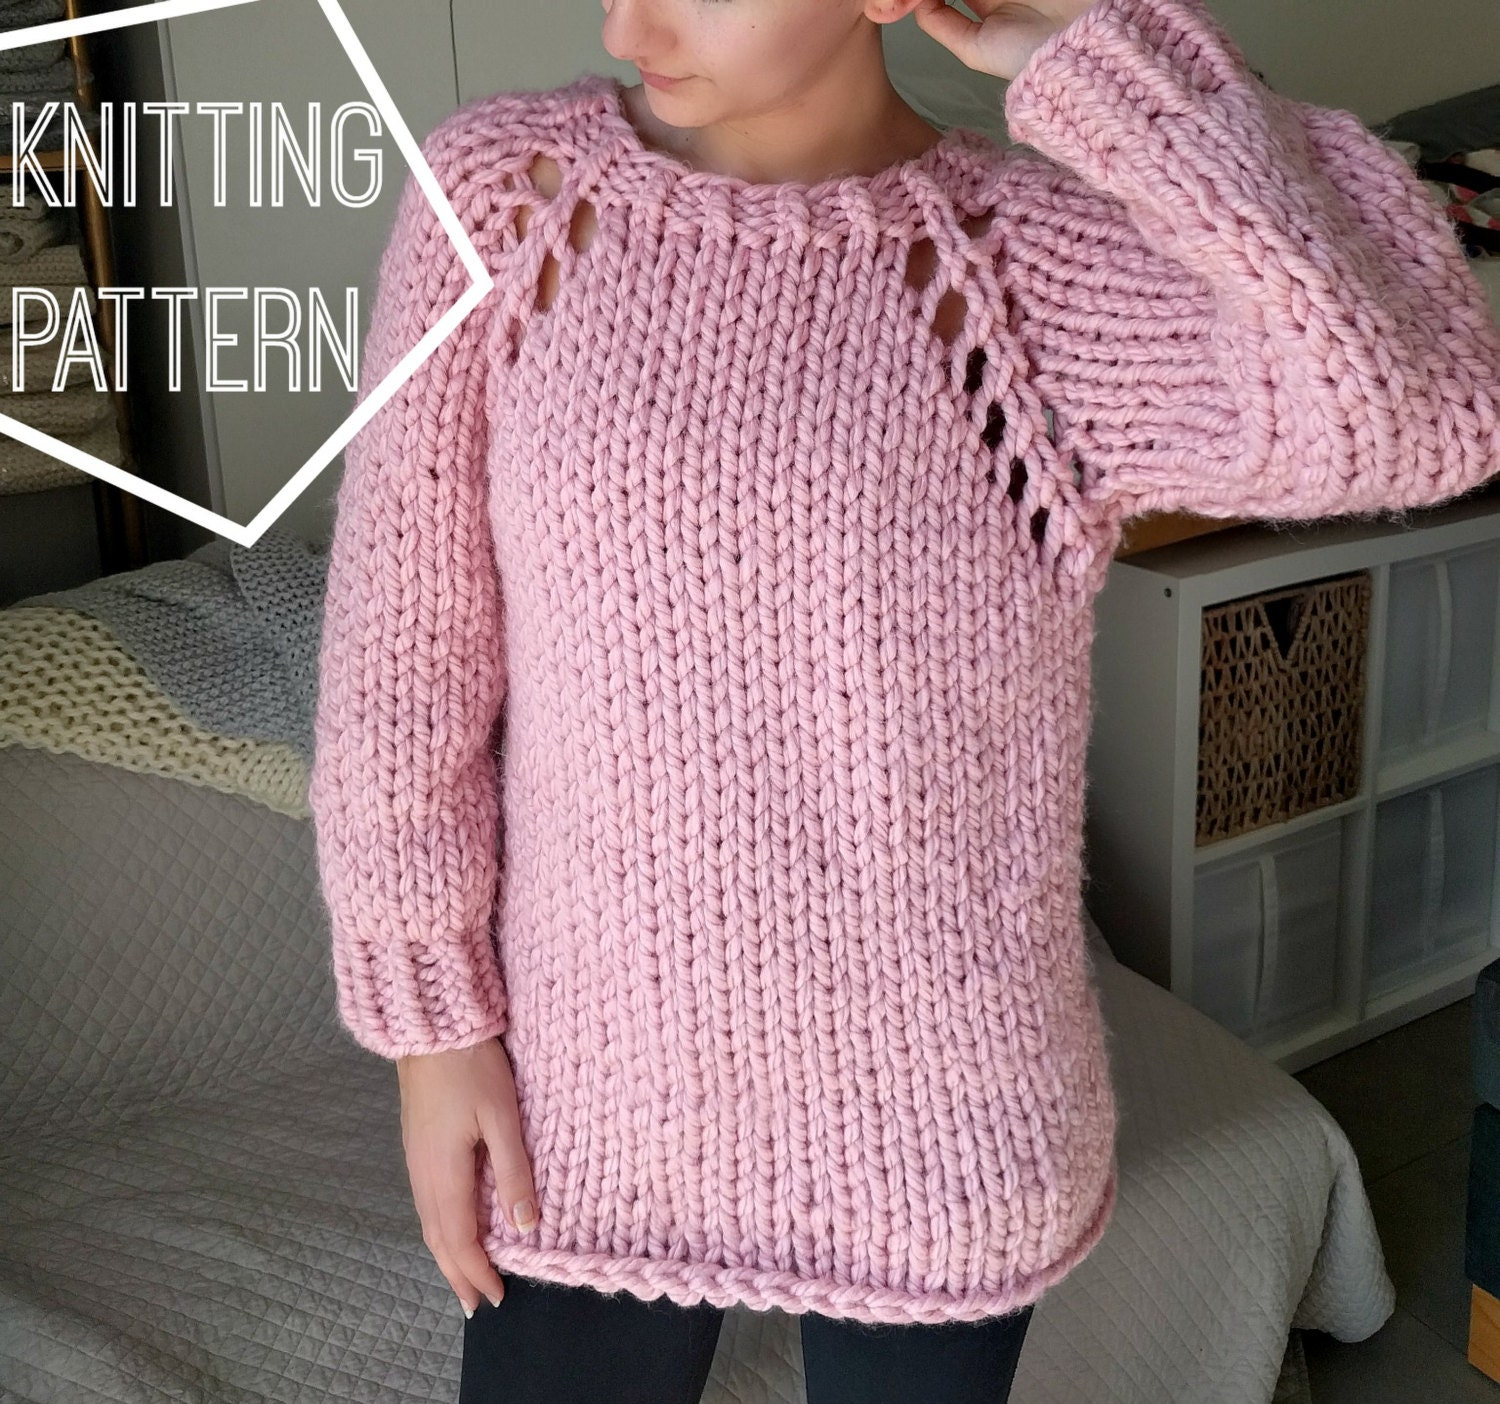 Chunky Knit Jumper Pattern Free : Chunky Knit Sweater Pattern, Top Down Raglan Sweater Pattern, Super Chunky Kn...